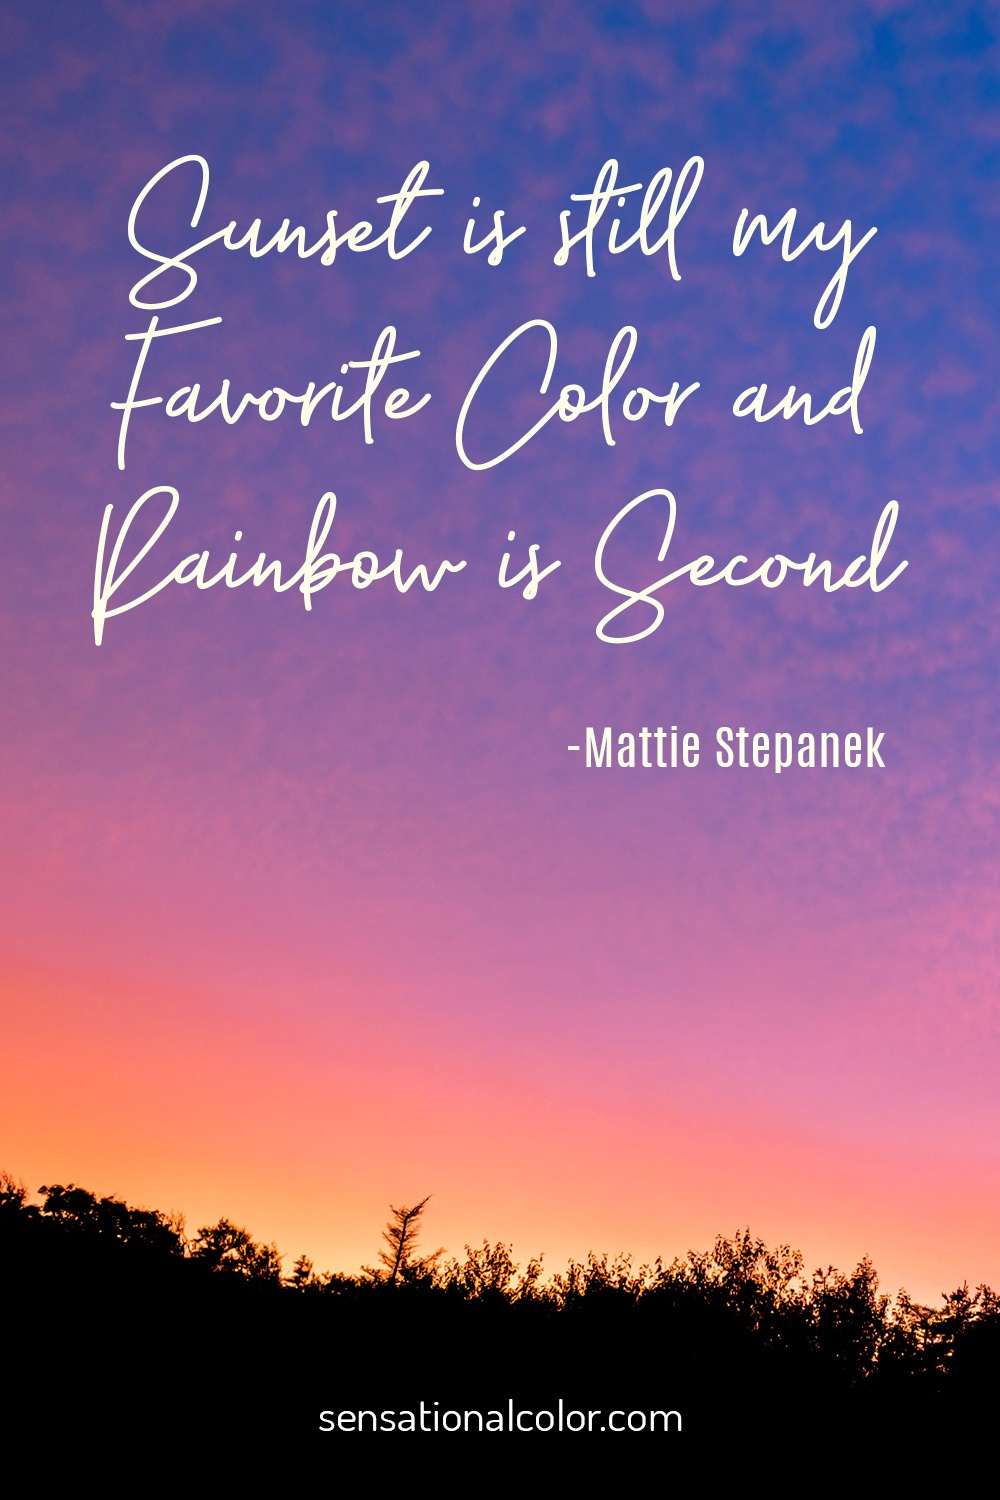 """Sunset is still my favorite color, and rainbow is second."" - Mattie Stepanek"